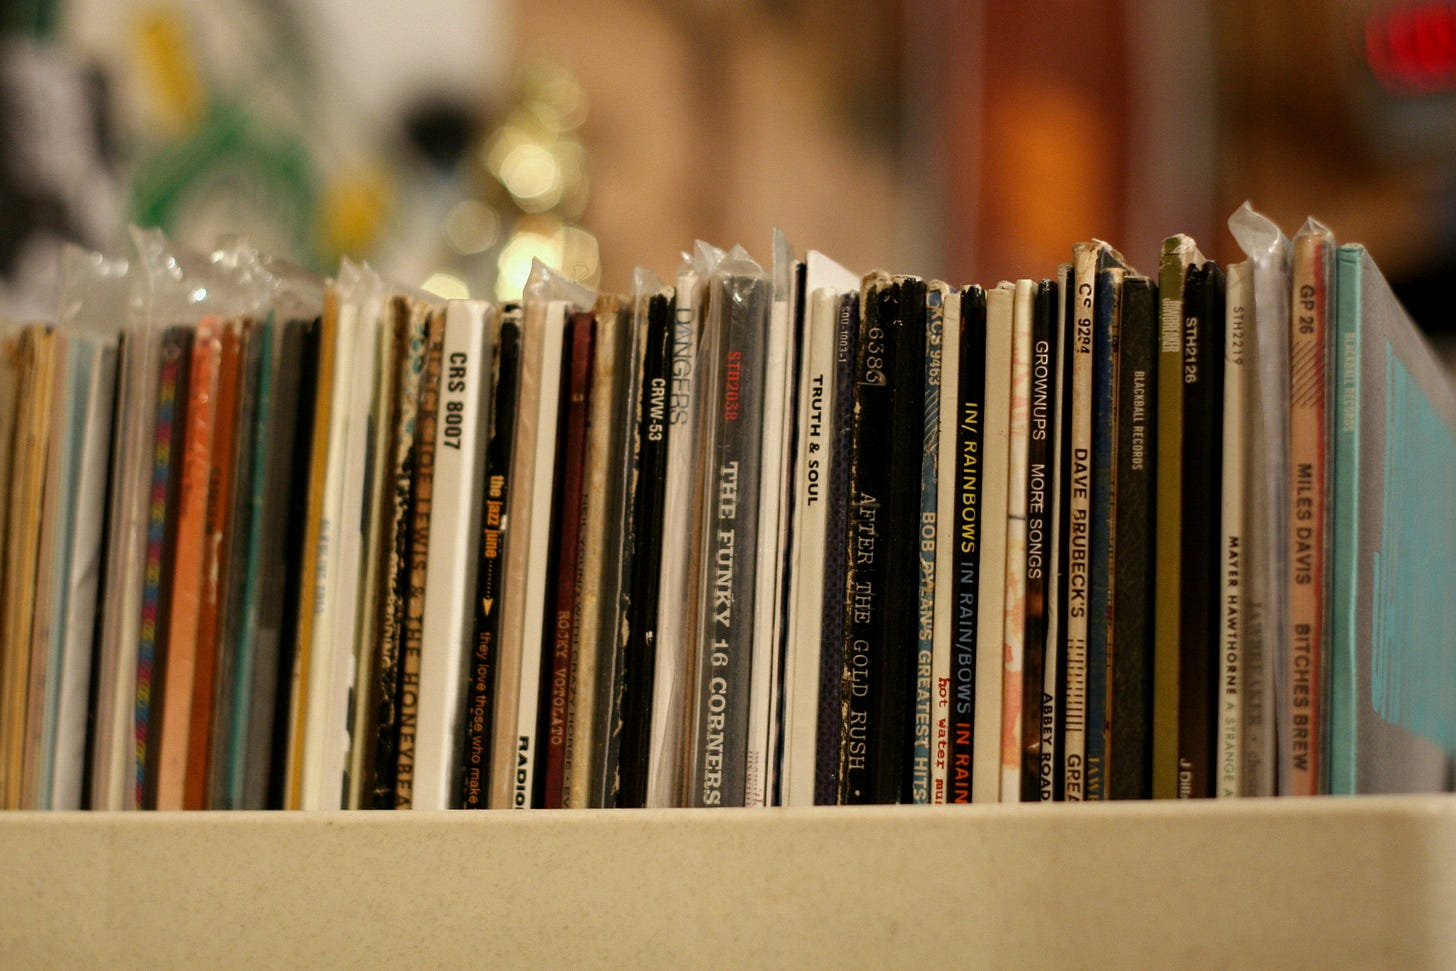 How to catalog your vinyl collection online - CNET